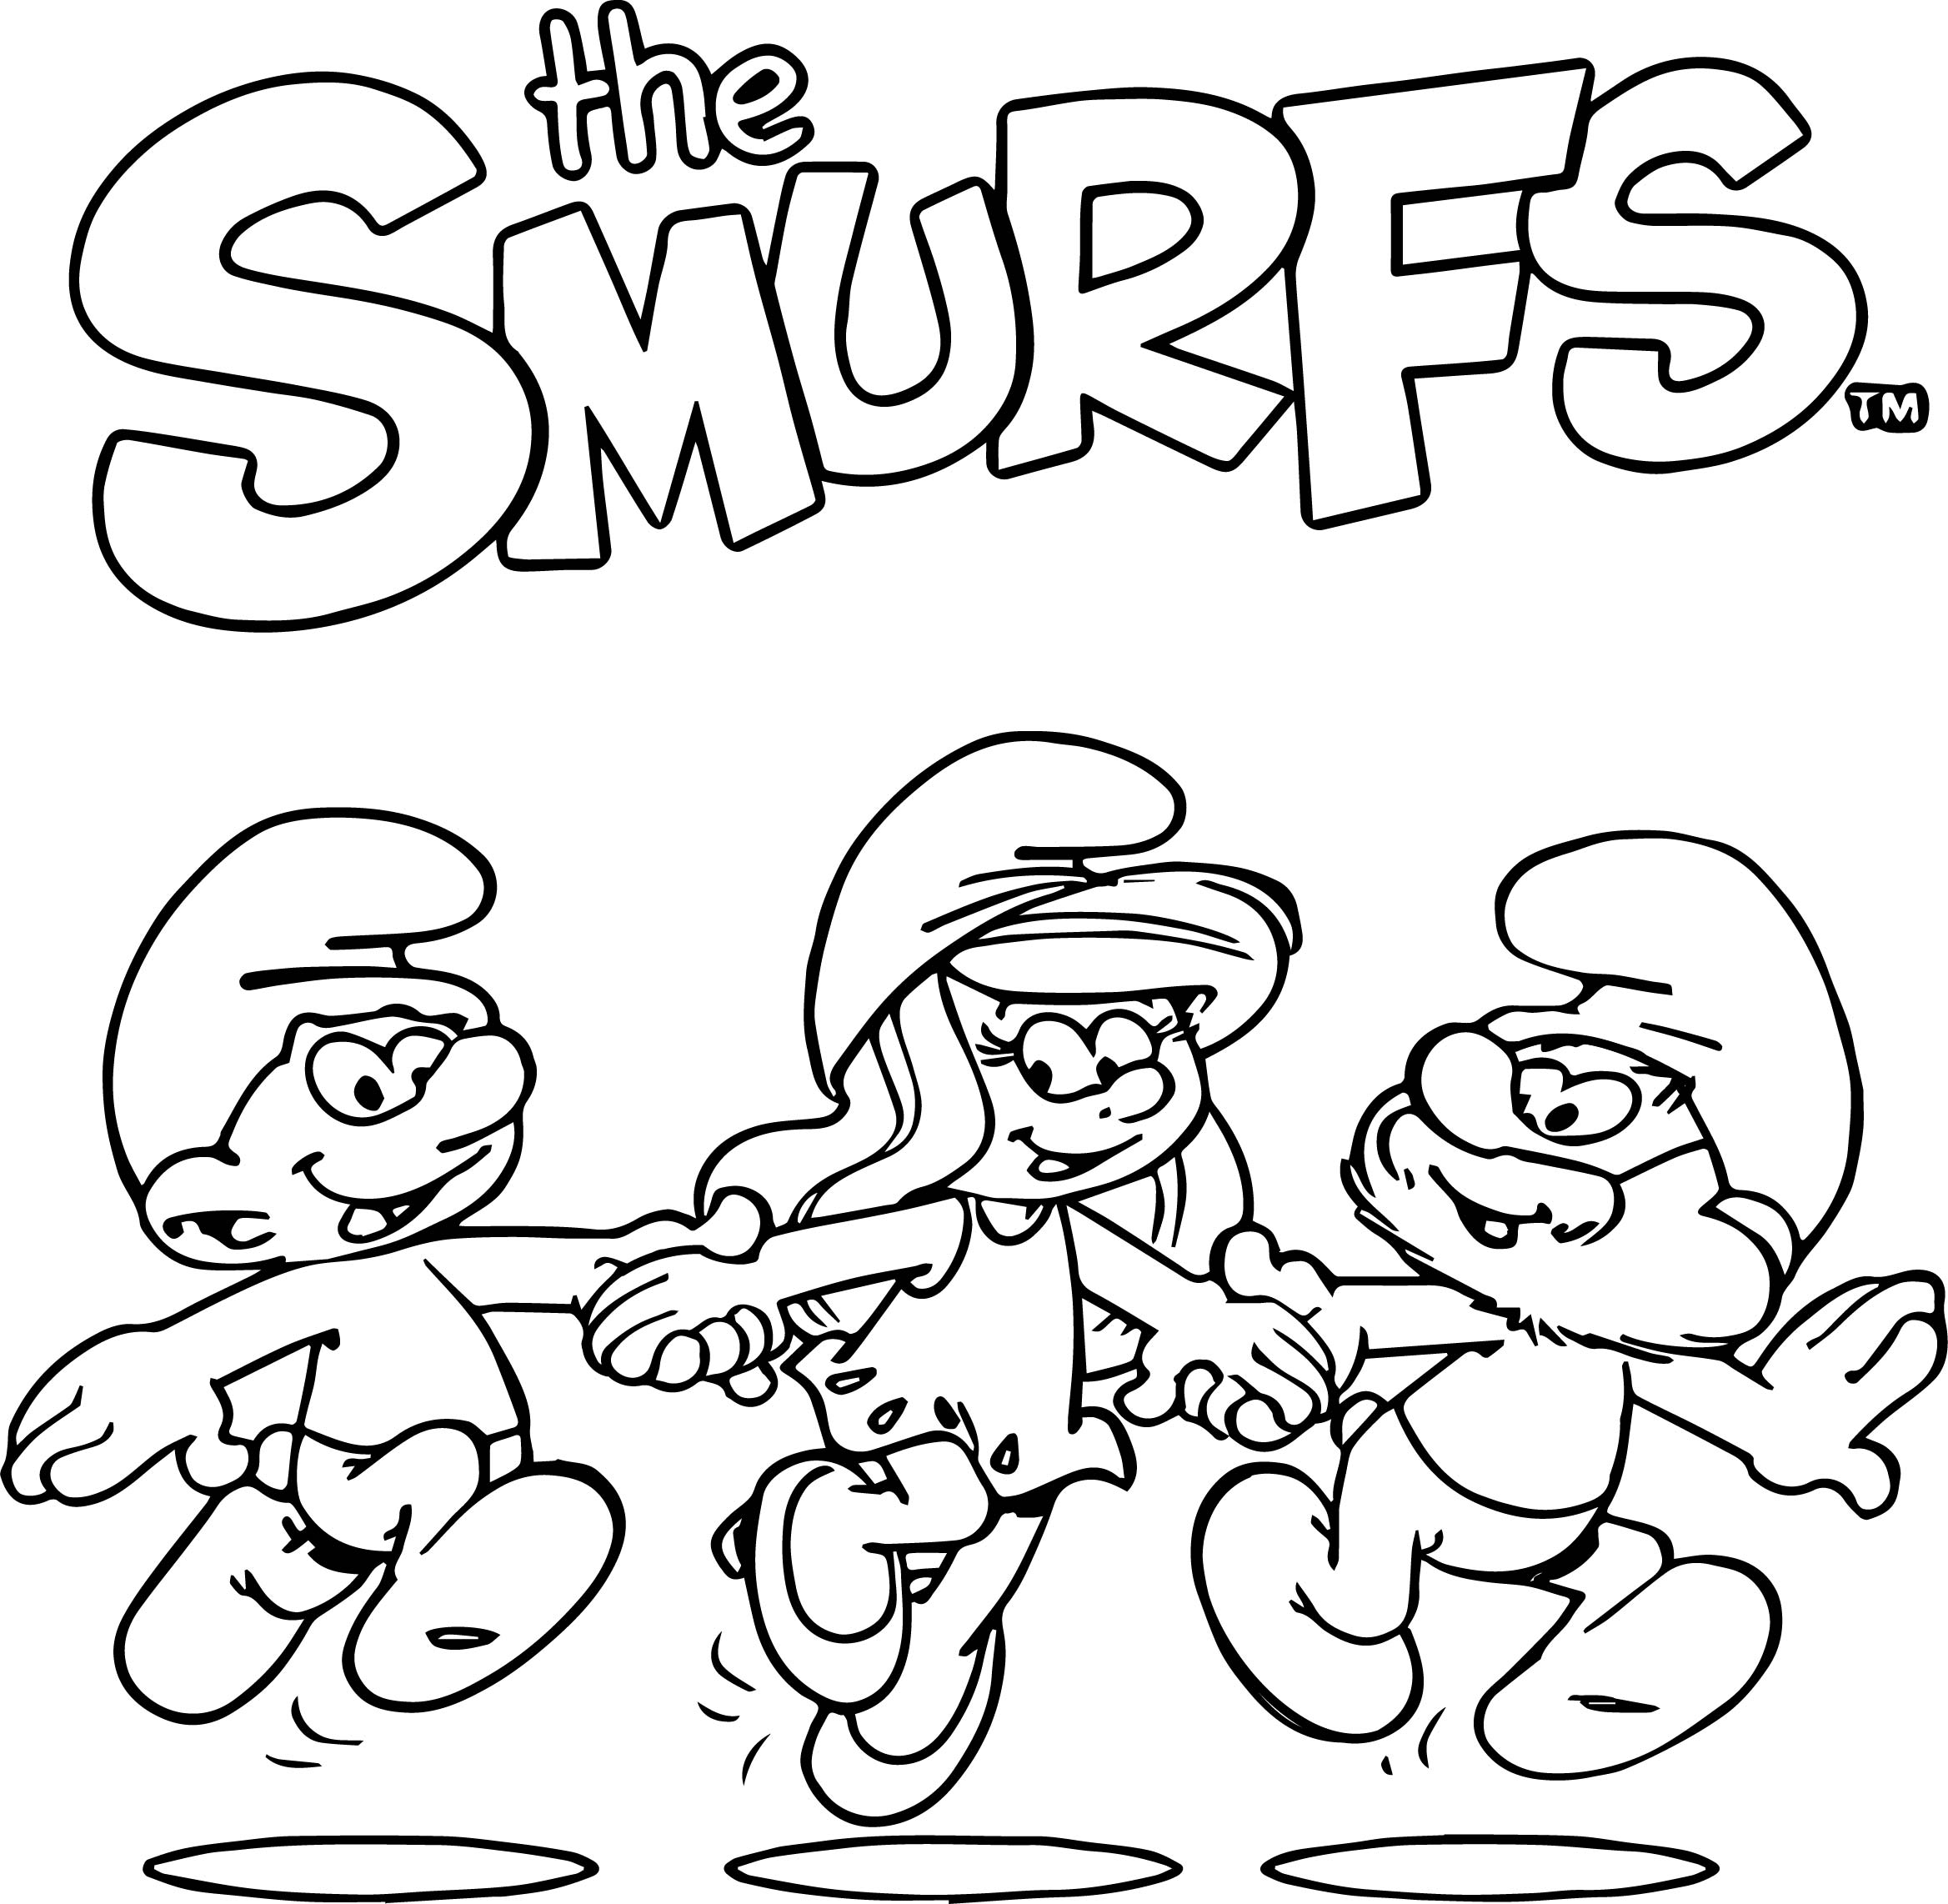 Smurf the smurfs coloring page